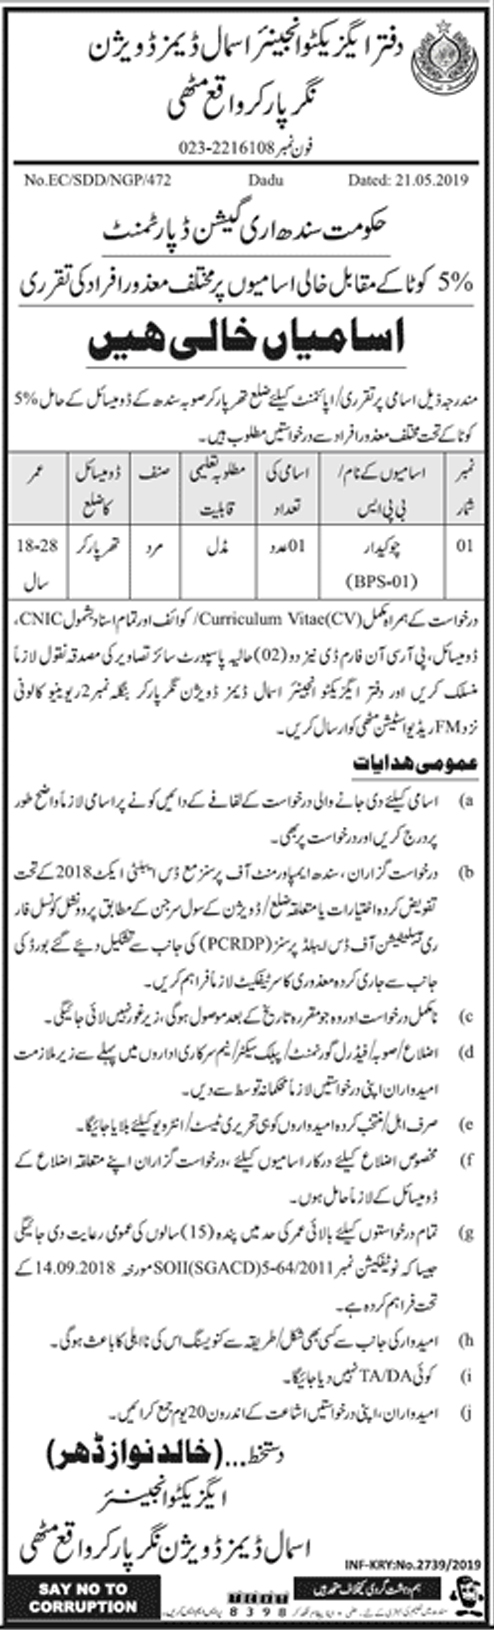 Jobs In Govt Of Sindh Irrigation Department 26 May 2019 -Jobs In